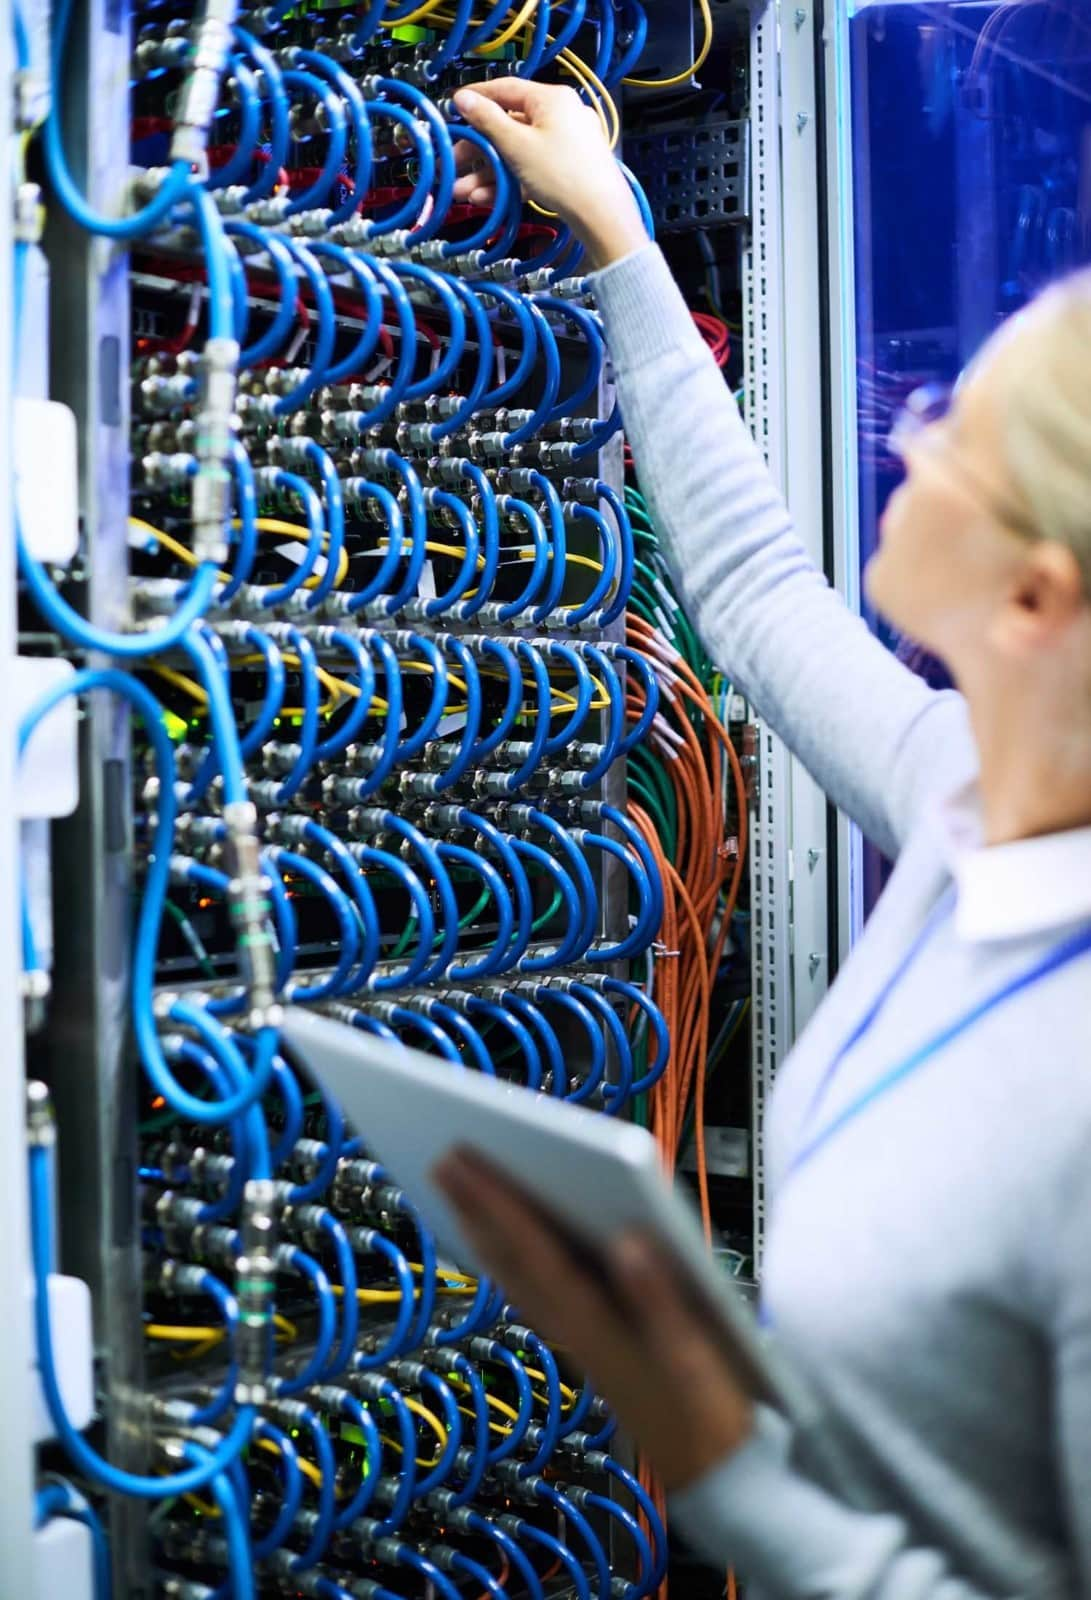 Woman adjusting server cables